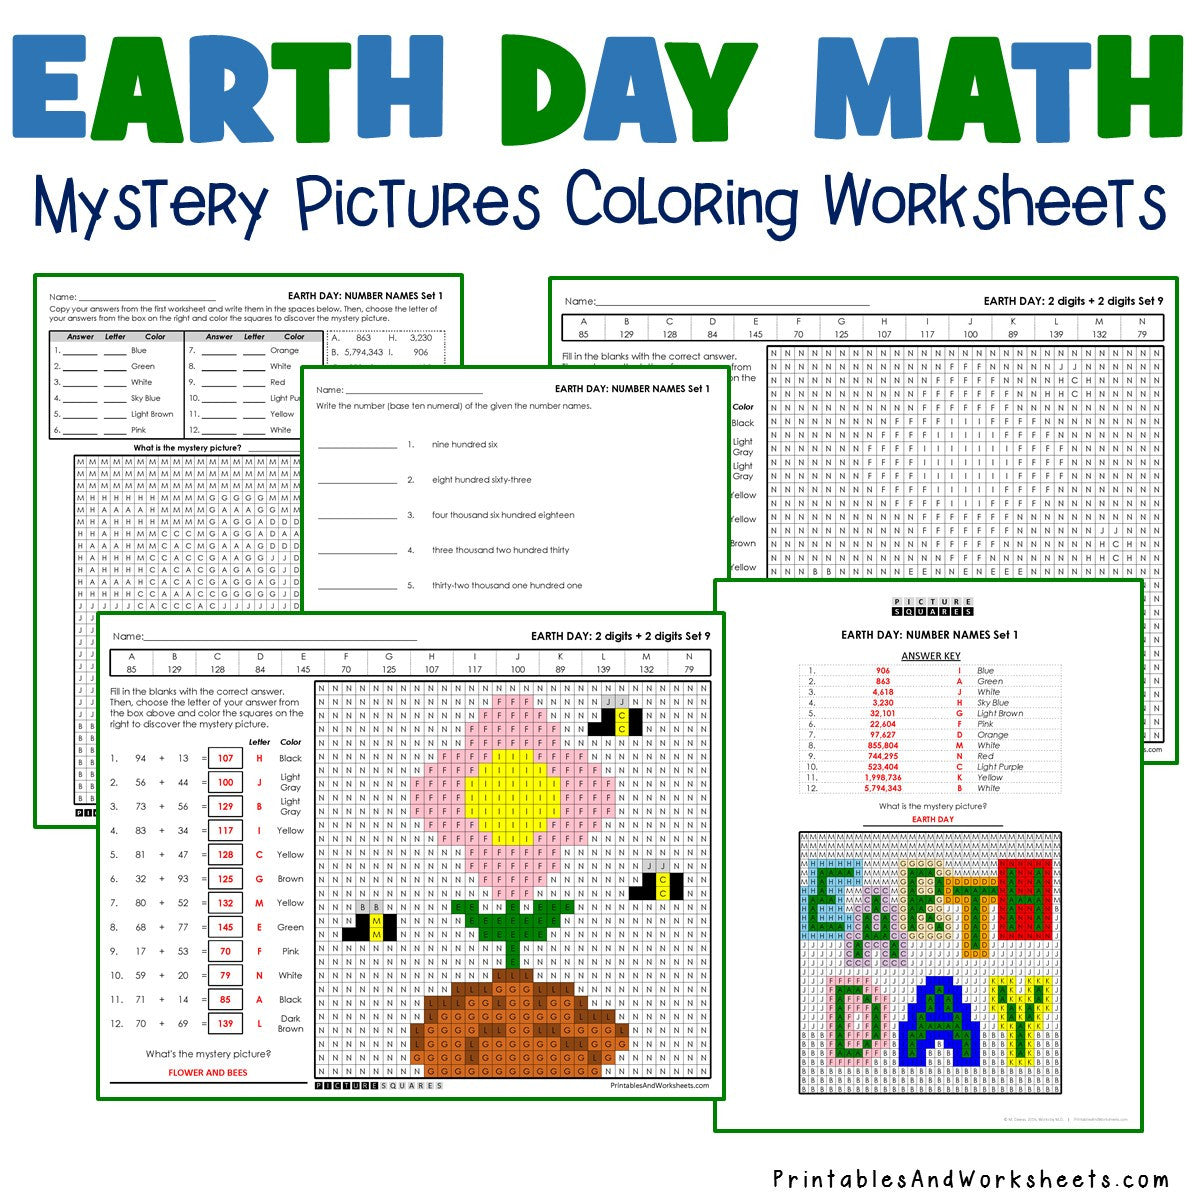 Earth Day Coloring Worksheets - Math